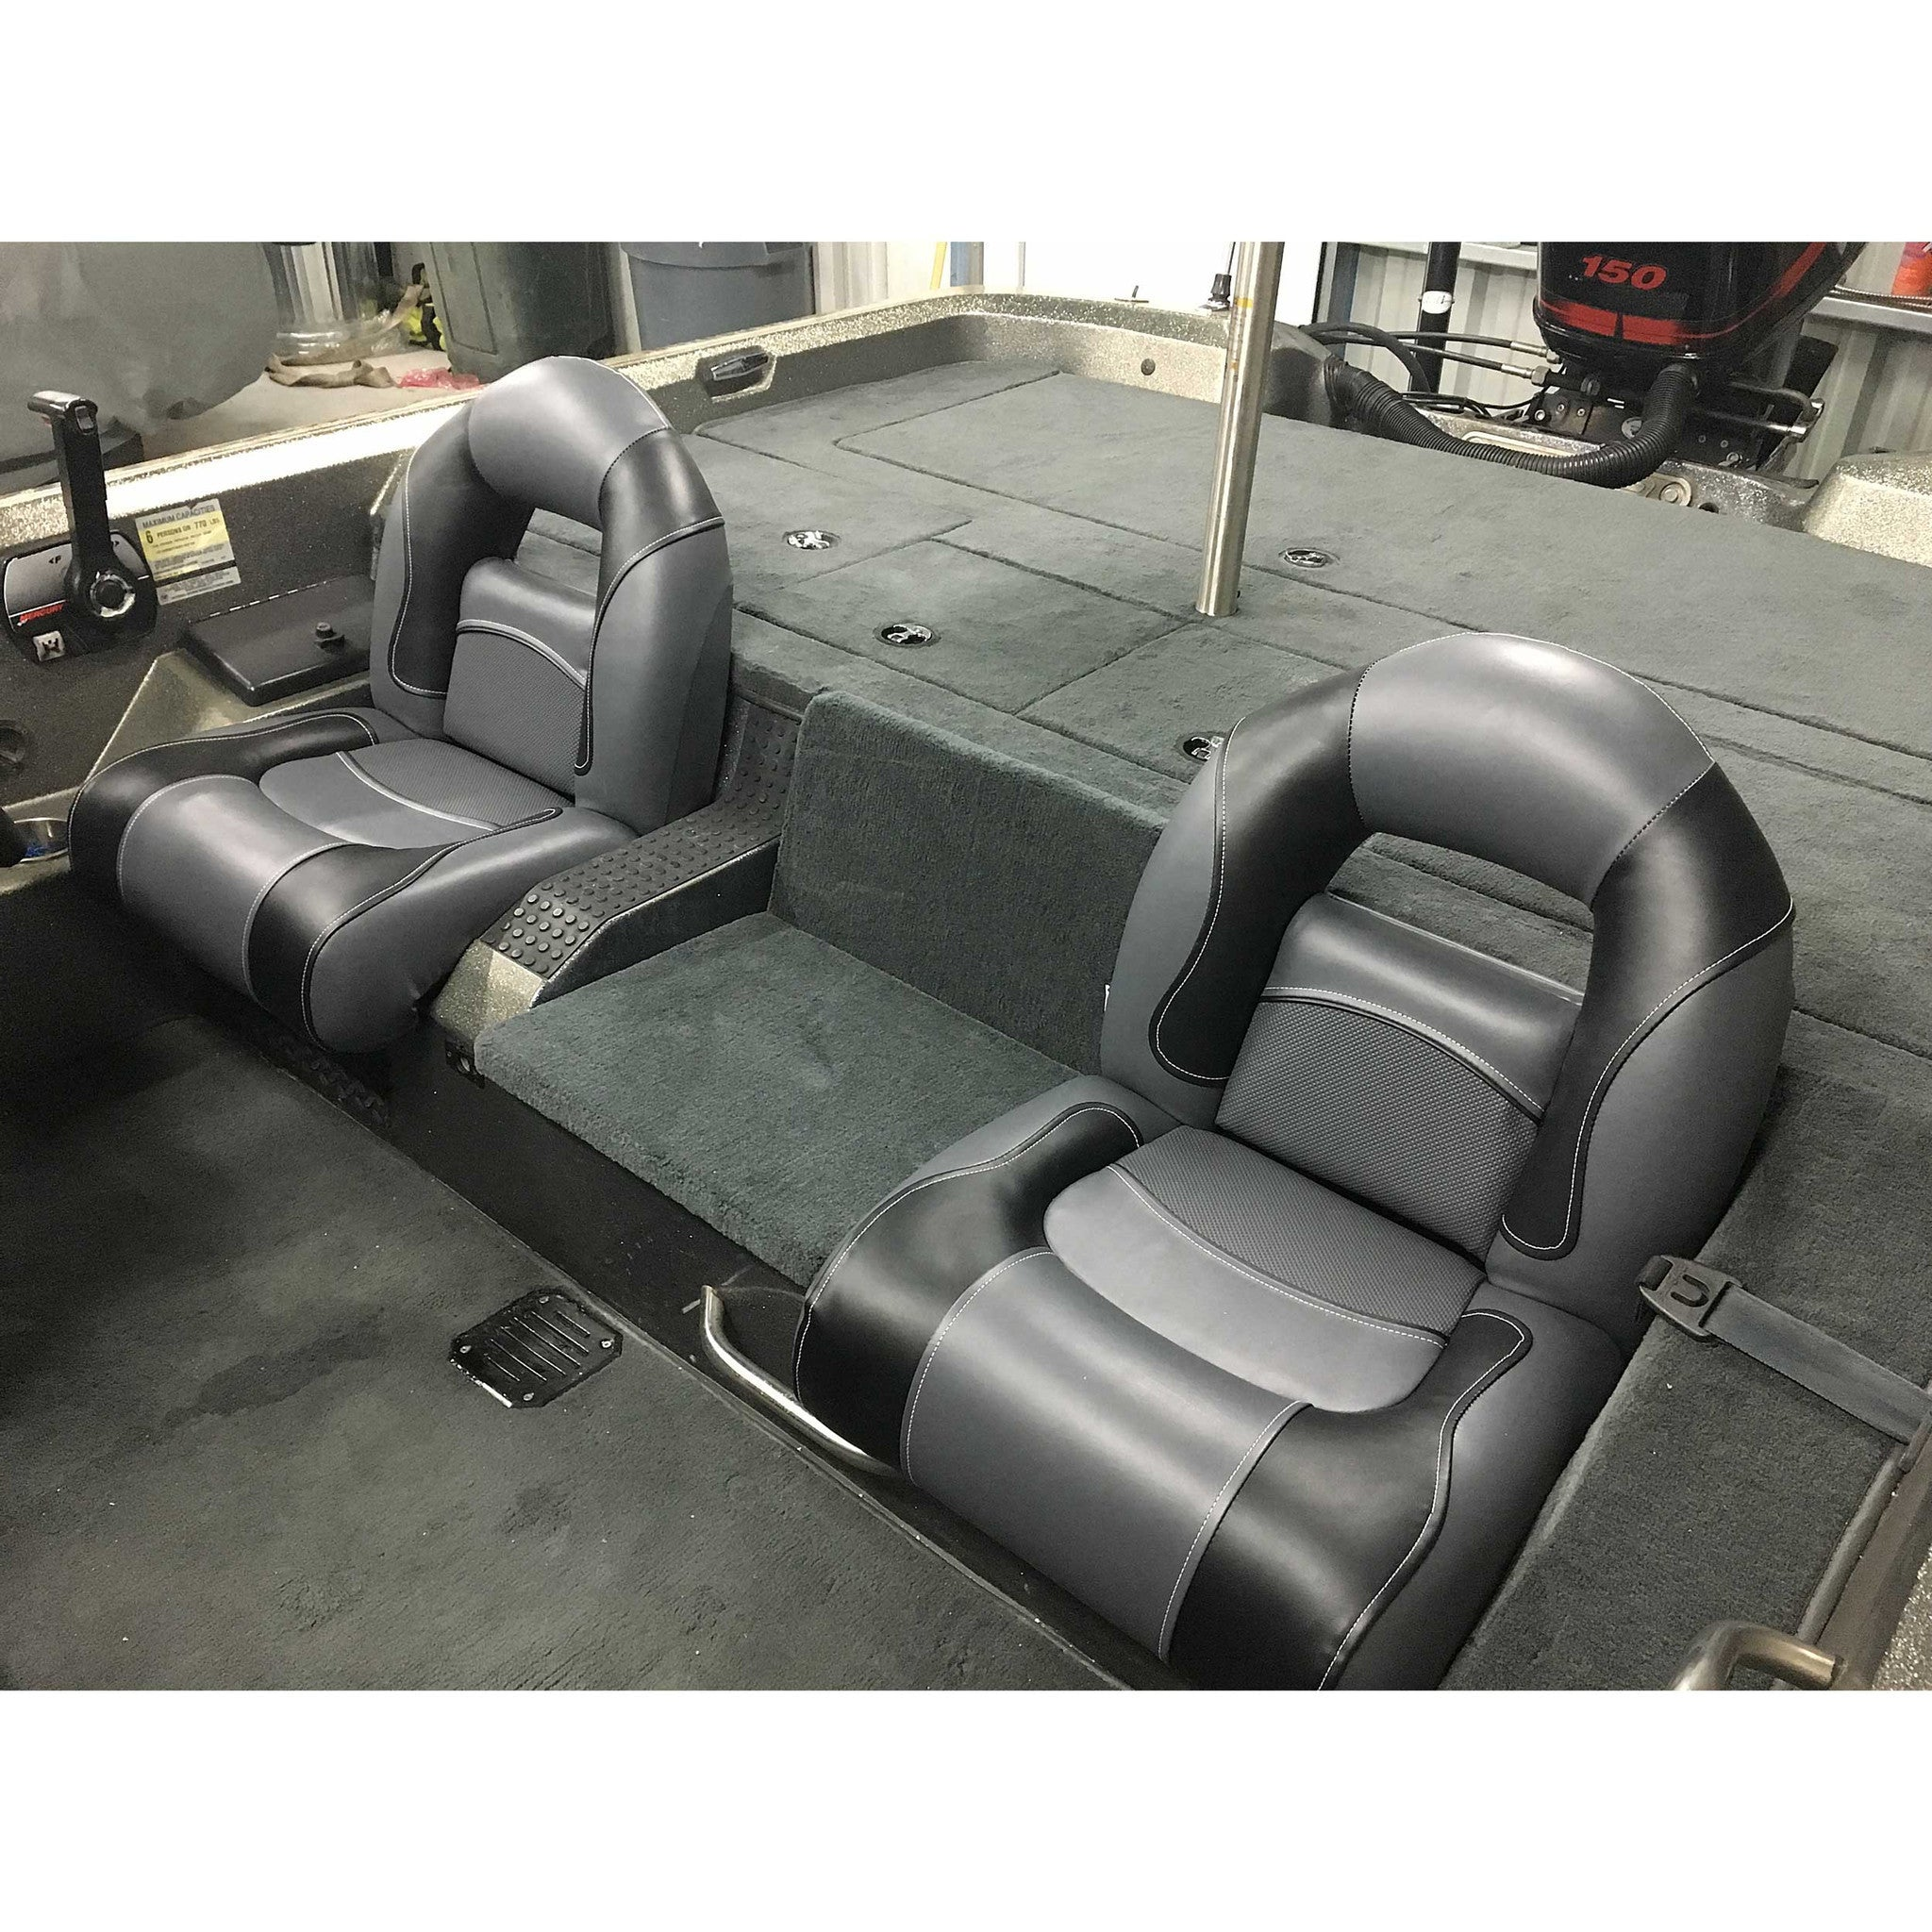 Excellent 52 Compact Bass Boat Seats Boat Seats Unemploymentrelief Wooden Chair Designs For Living Room Unemploymentrelieforg